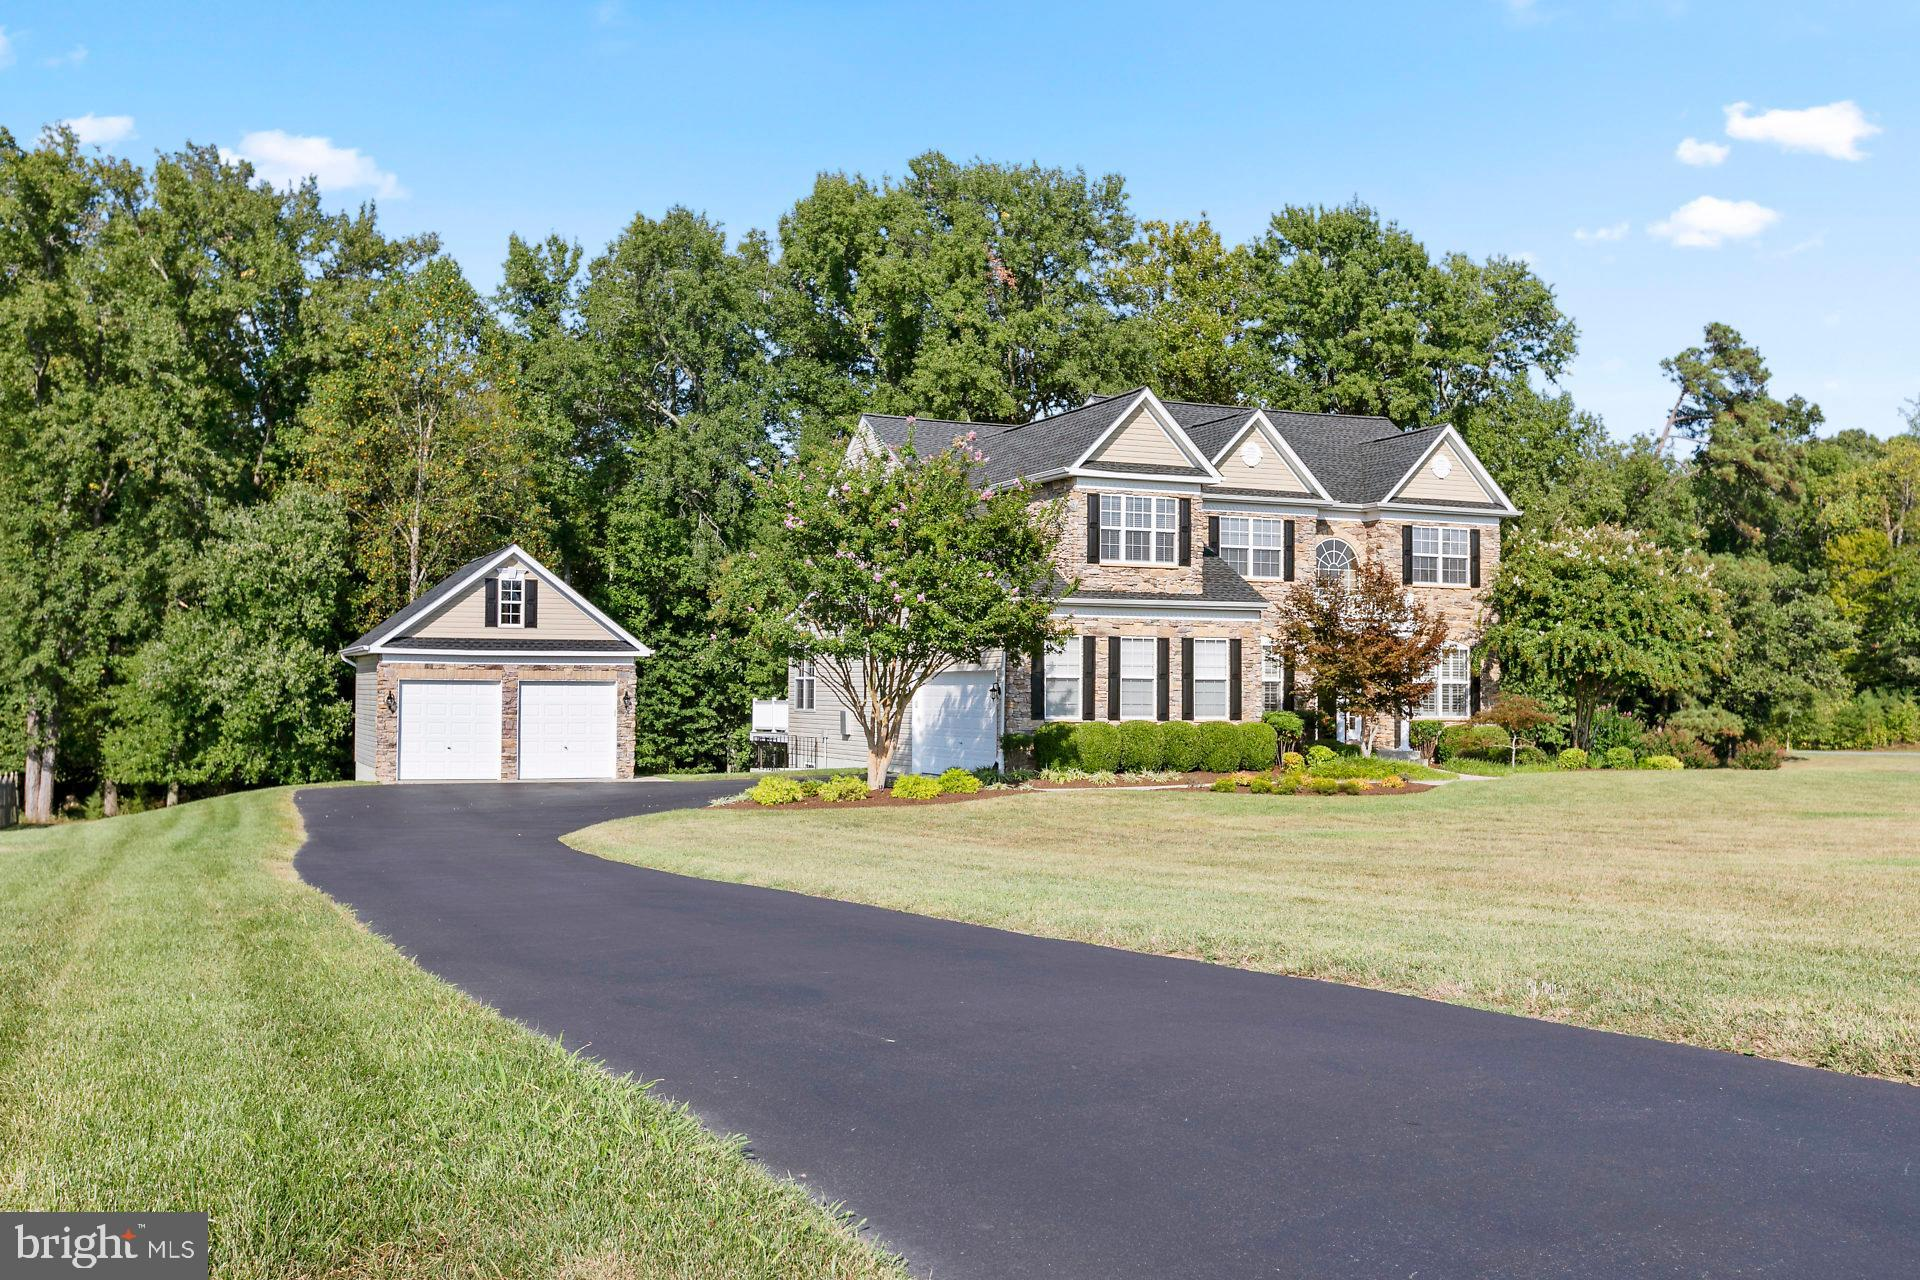 Located in the sought-out Leonardtown Farm neighborhood, this home has it all......The Pinehurst Mod